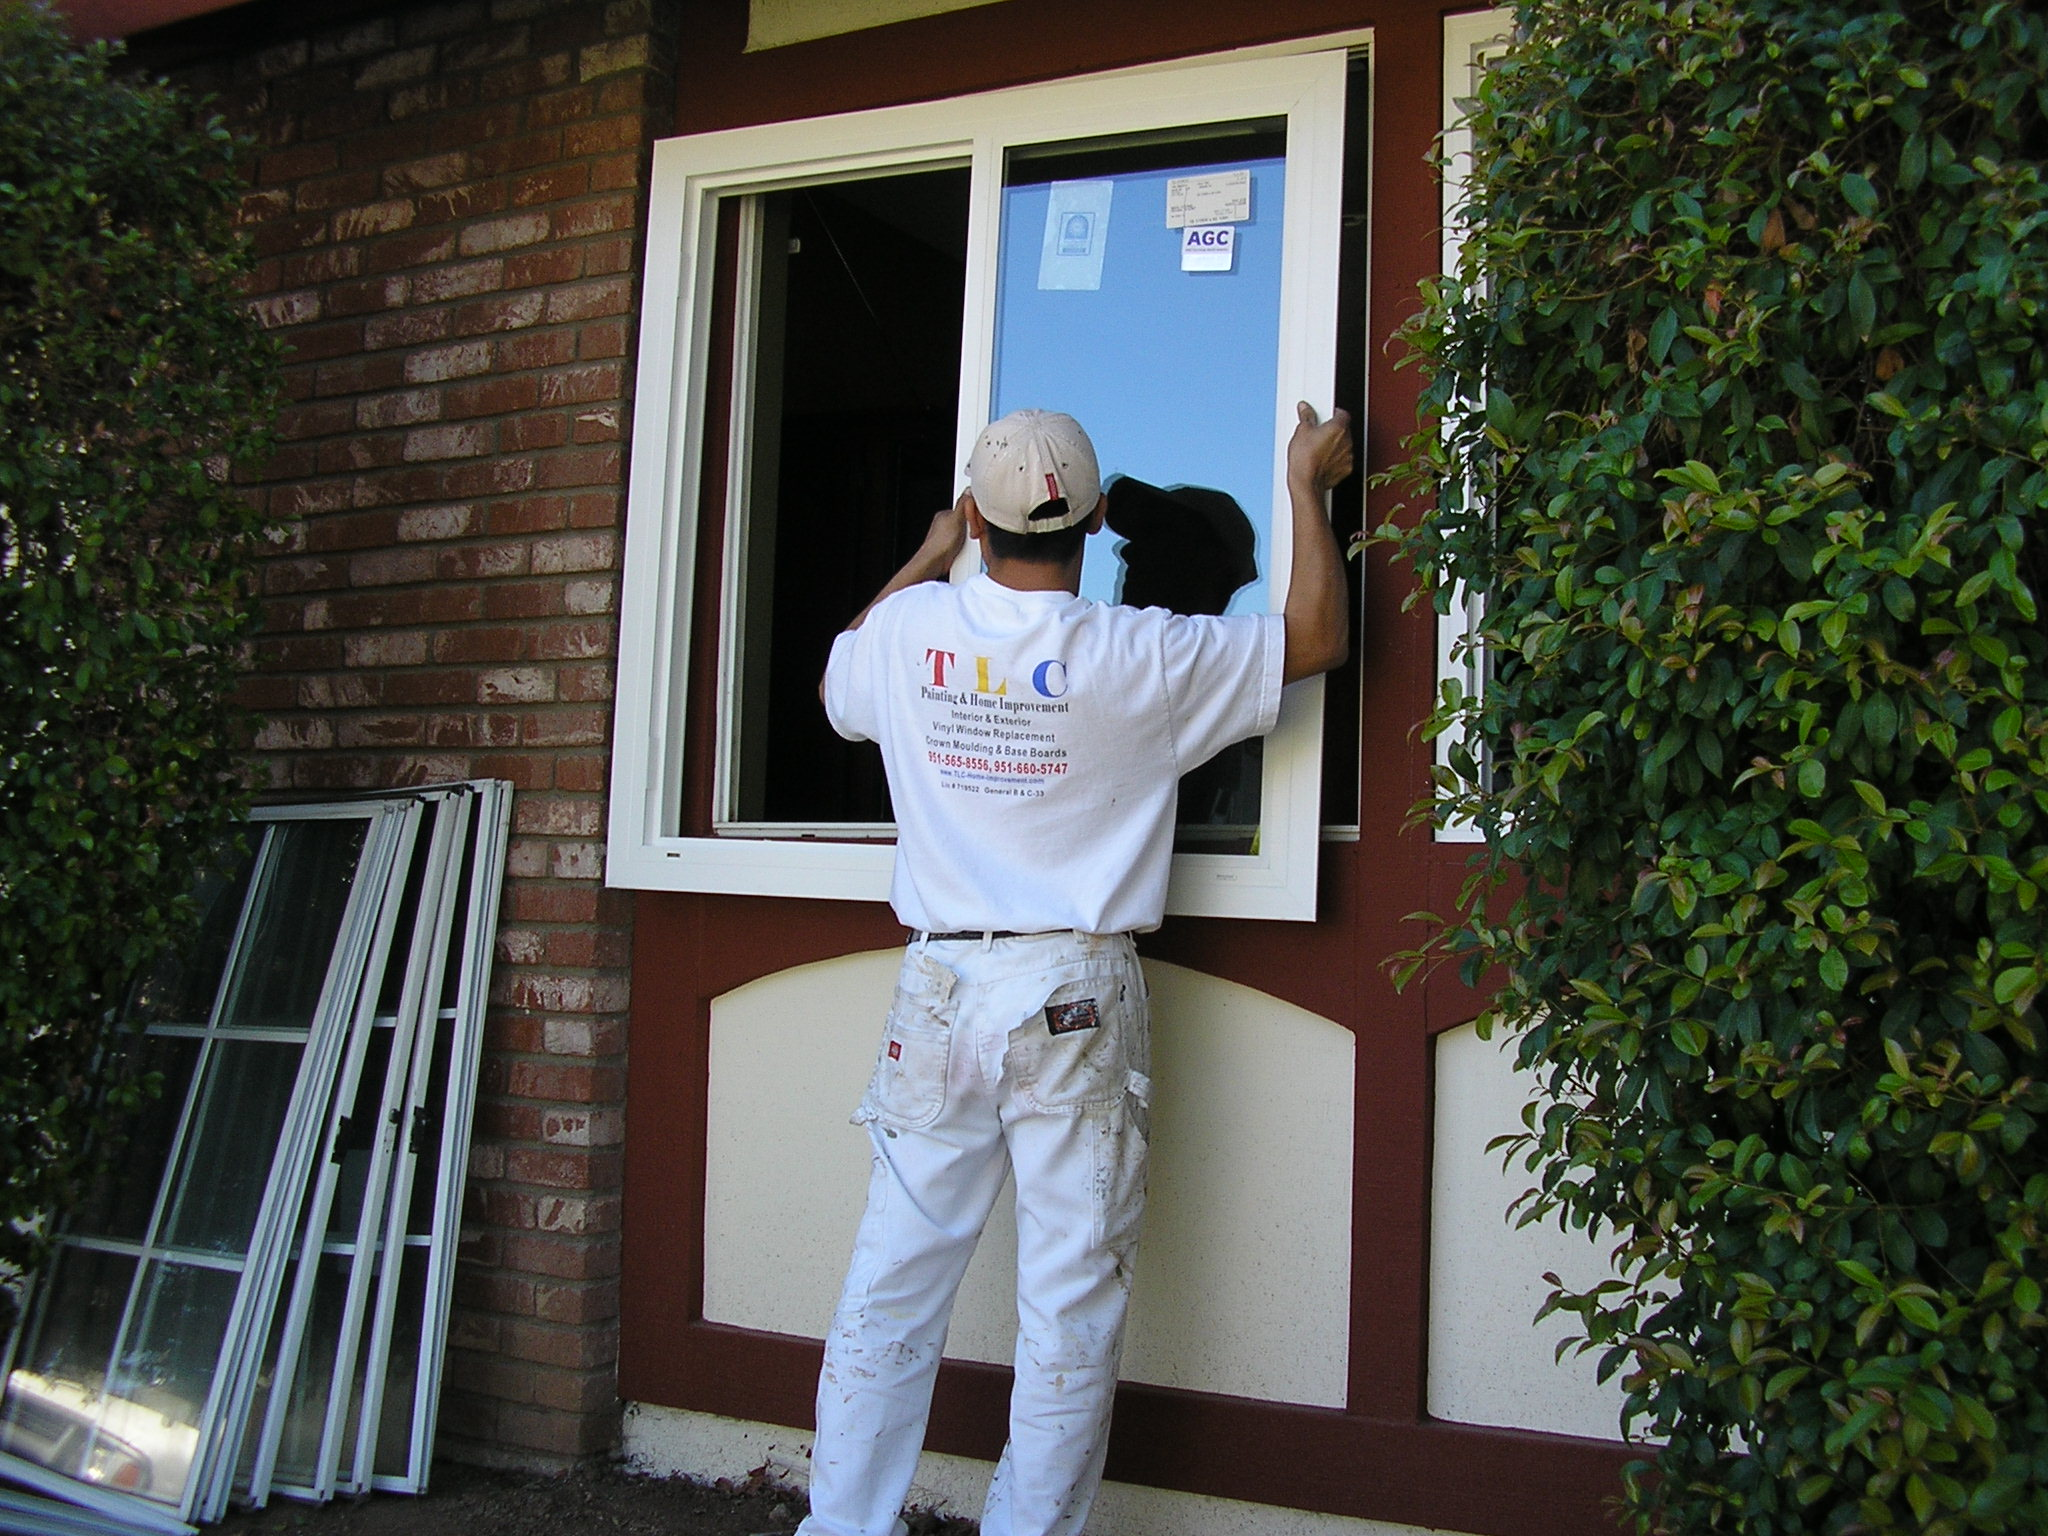 Vinyl windows install vinyl windows for New vinyl windows